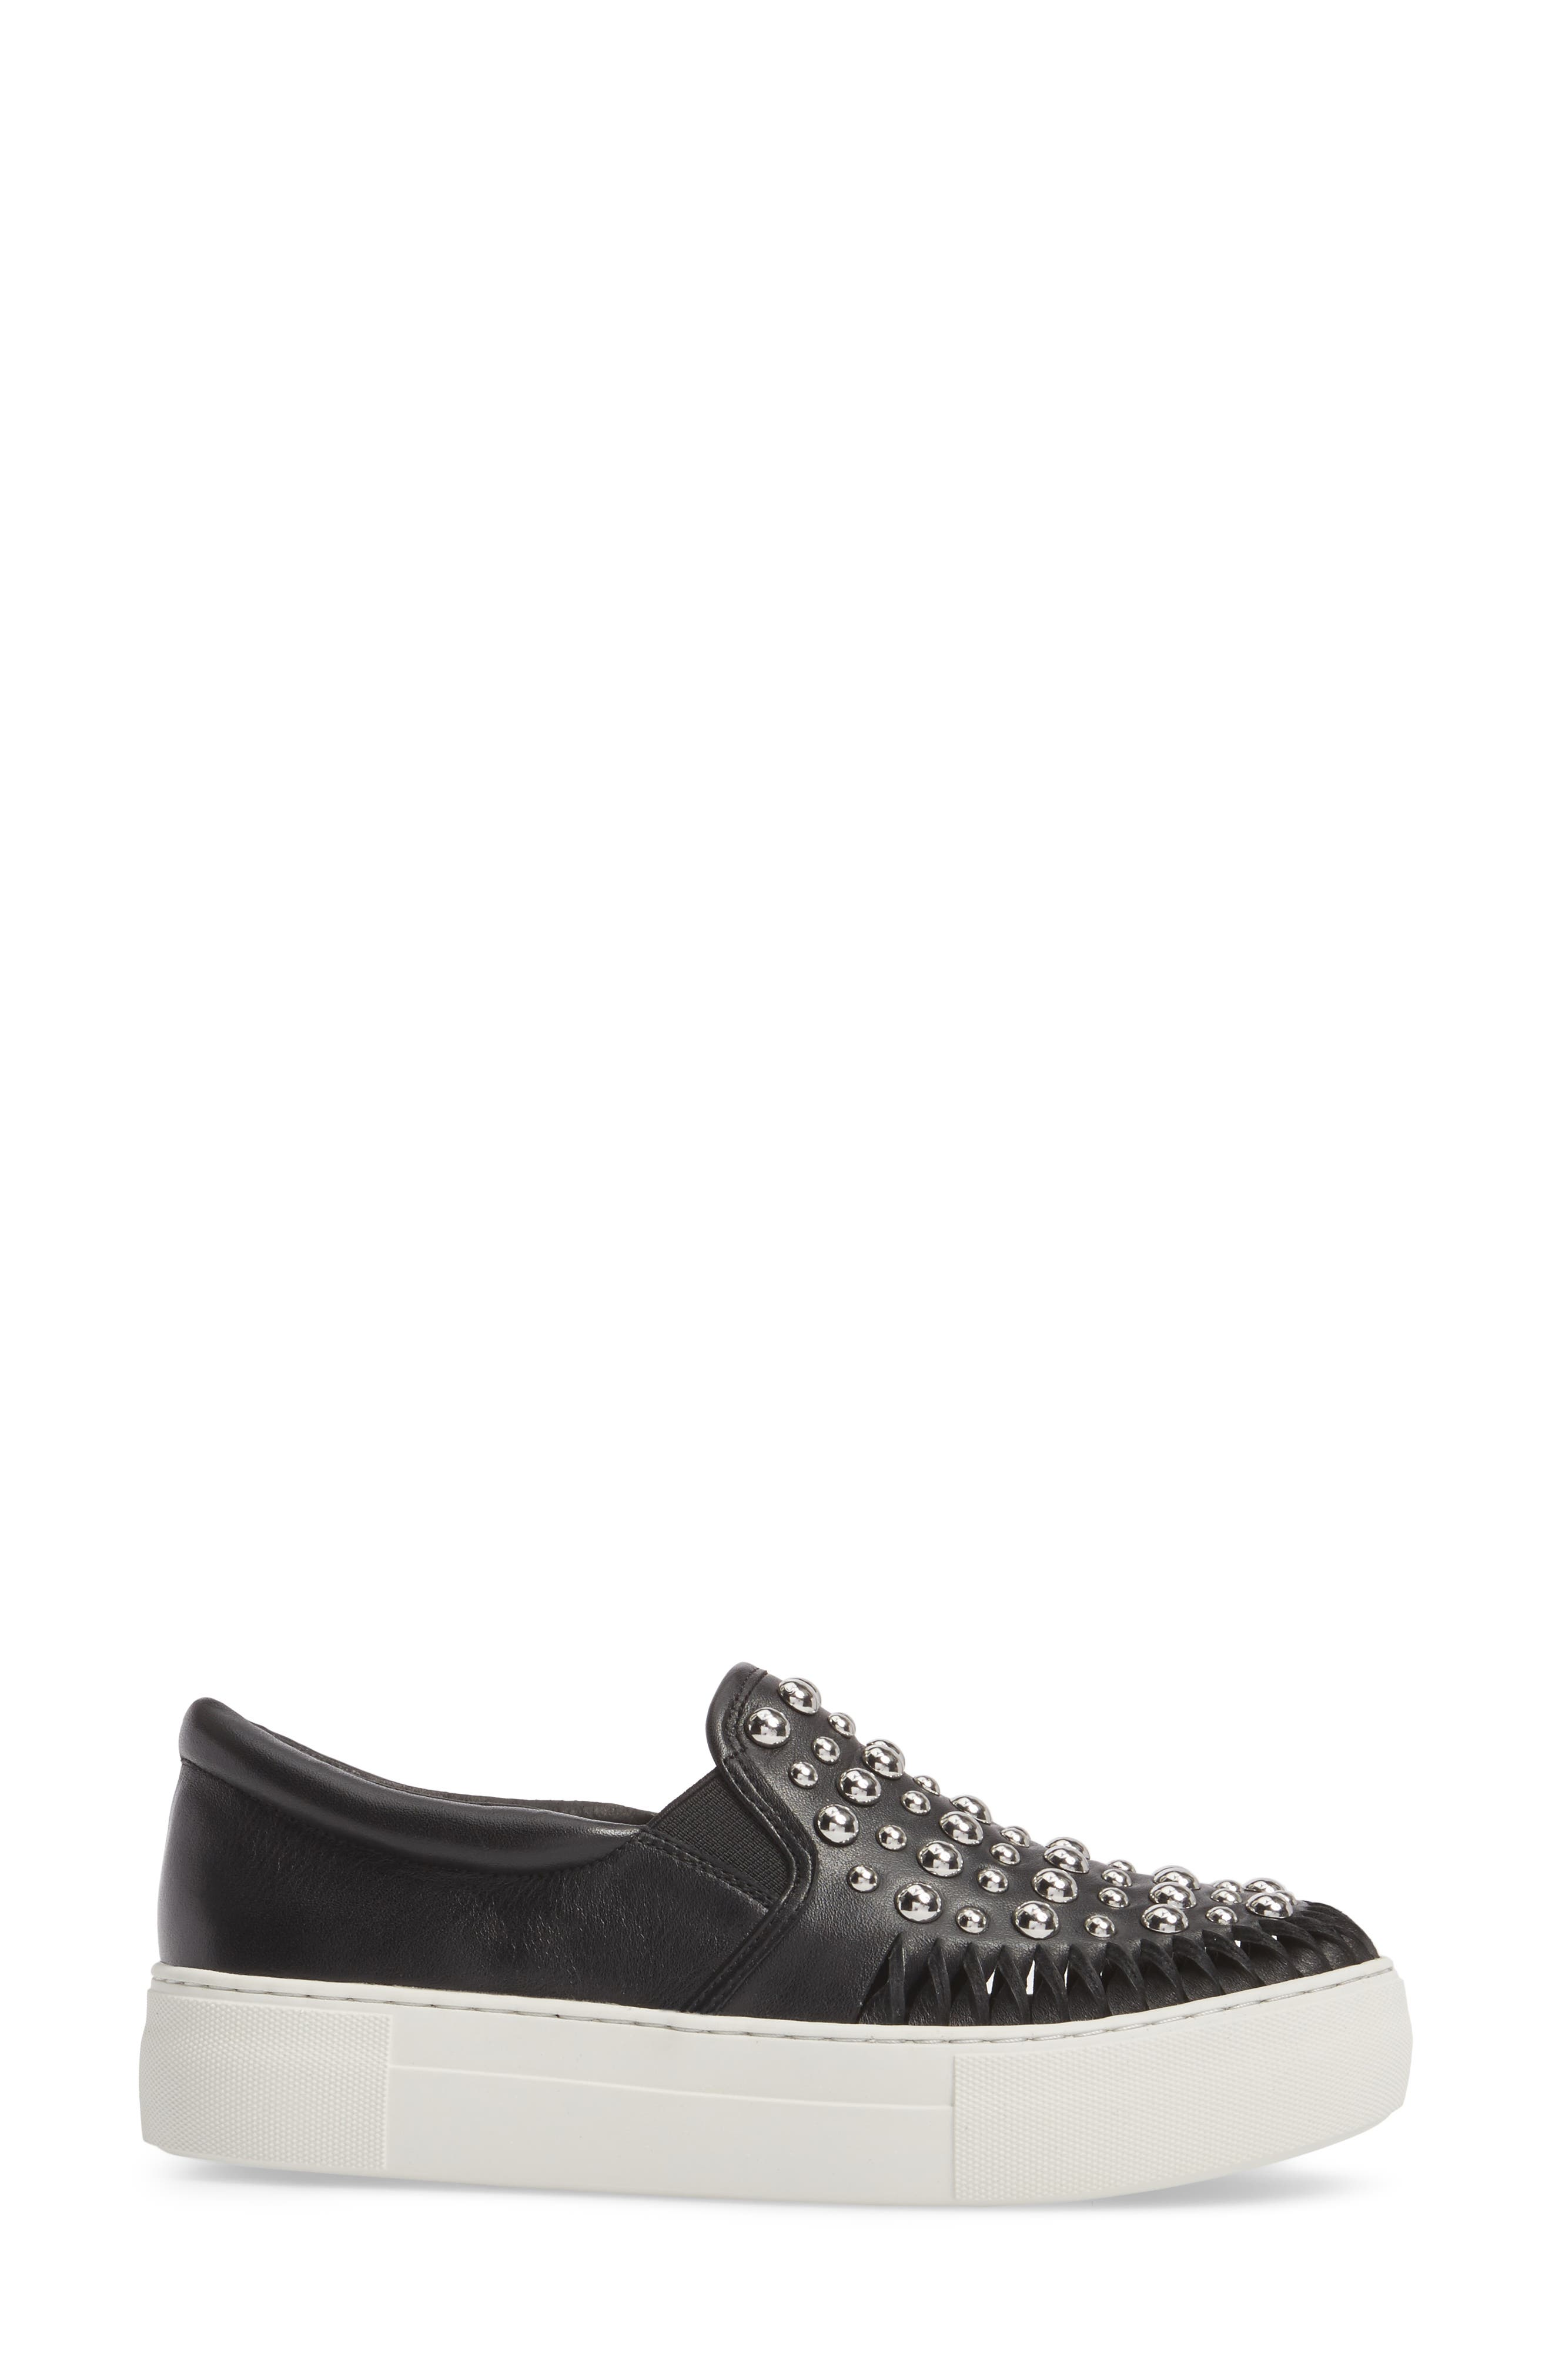 AZT Studded Slip-On Sneaker,                             Alternate thumbnail 3, color,                             015